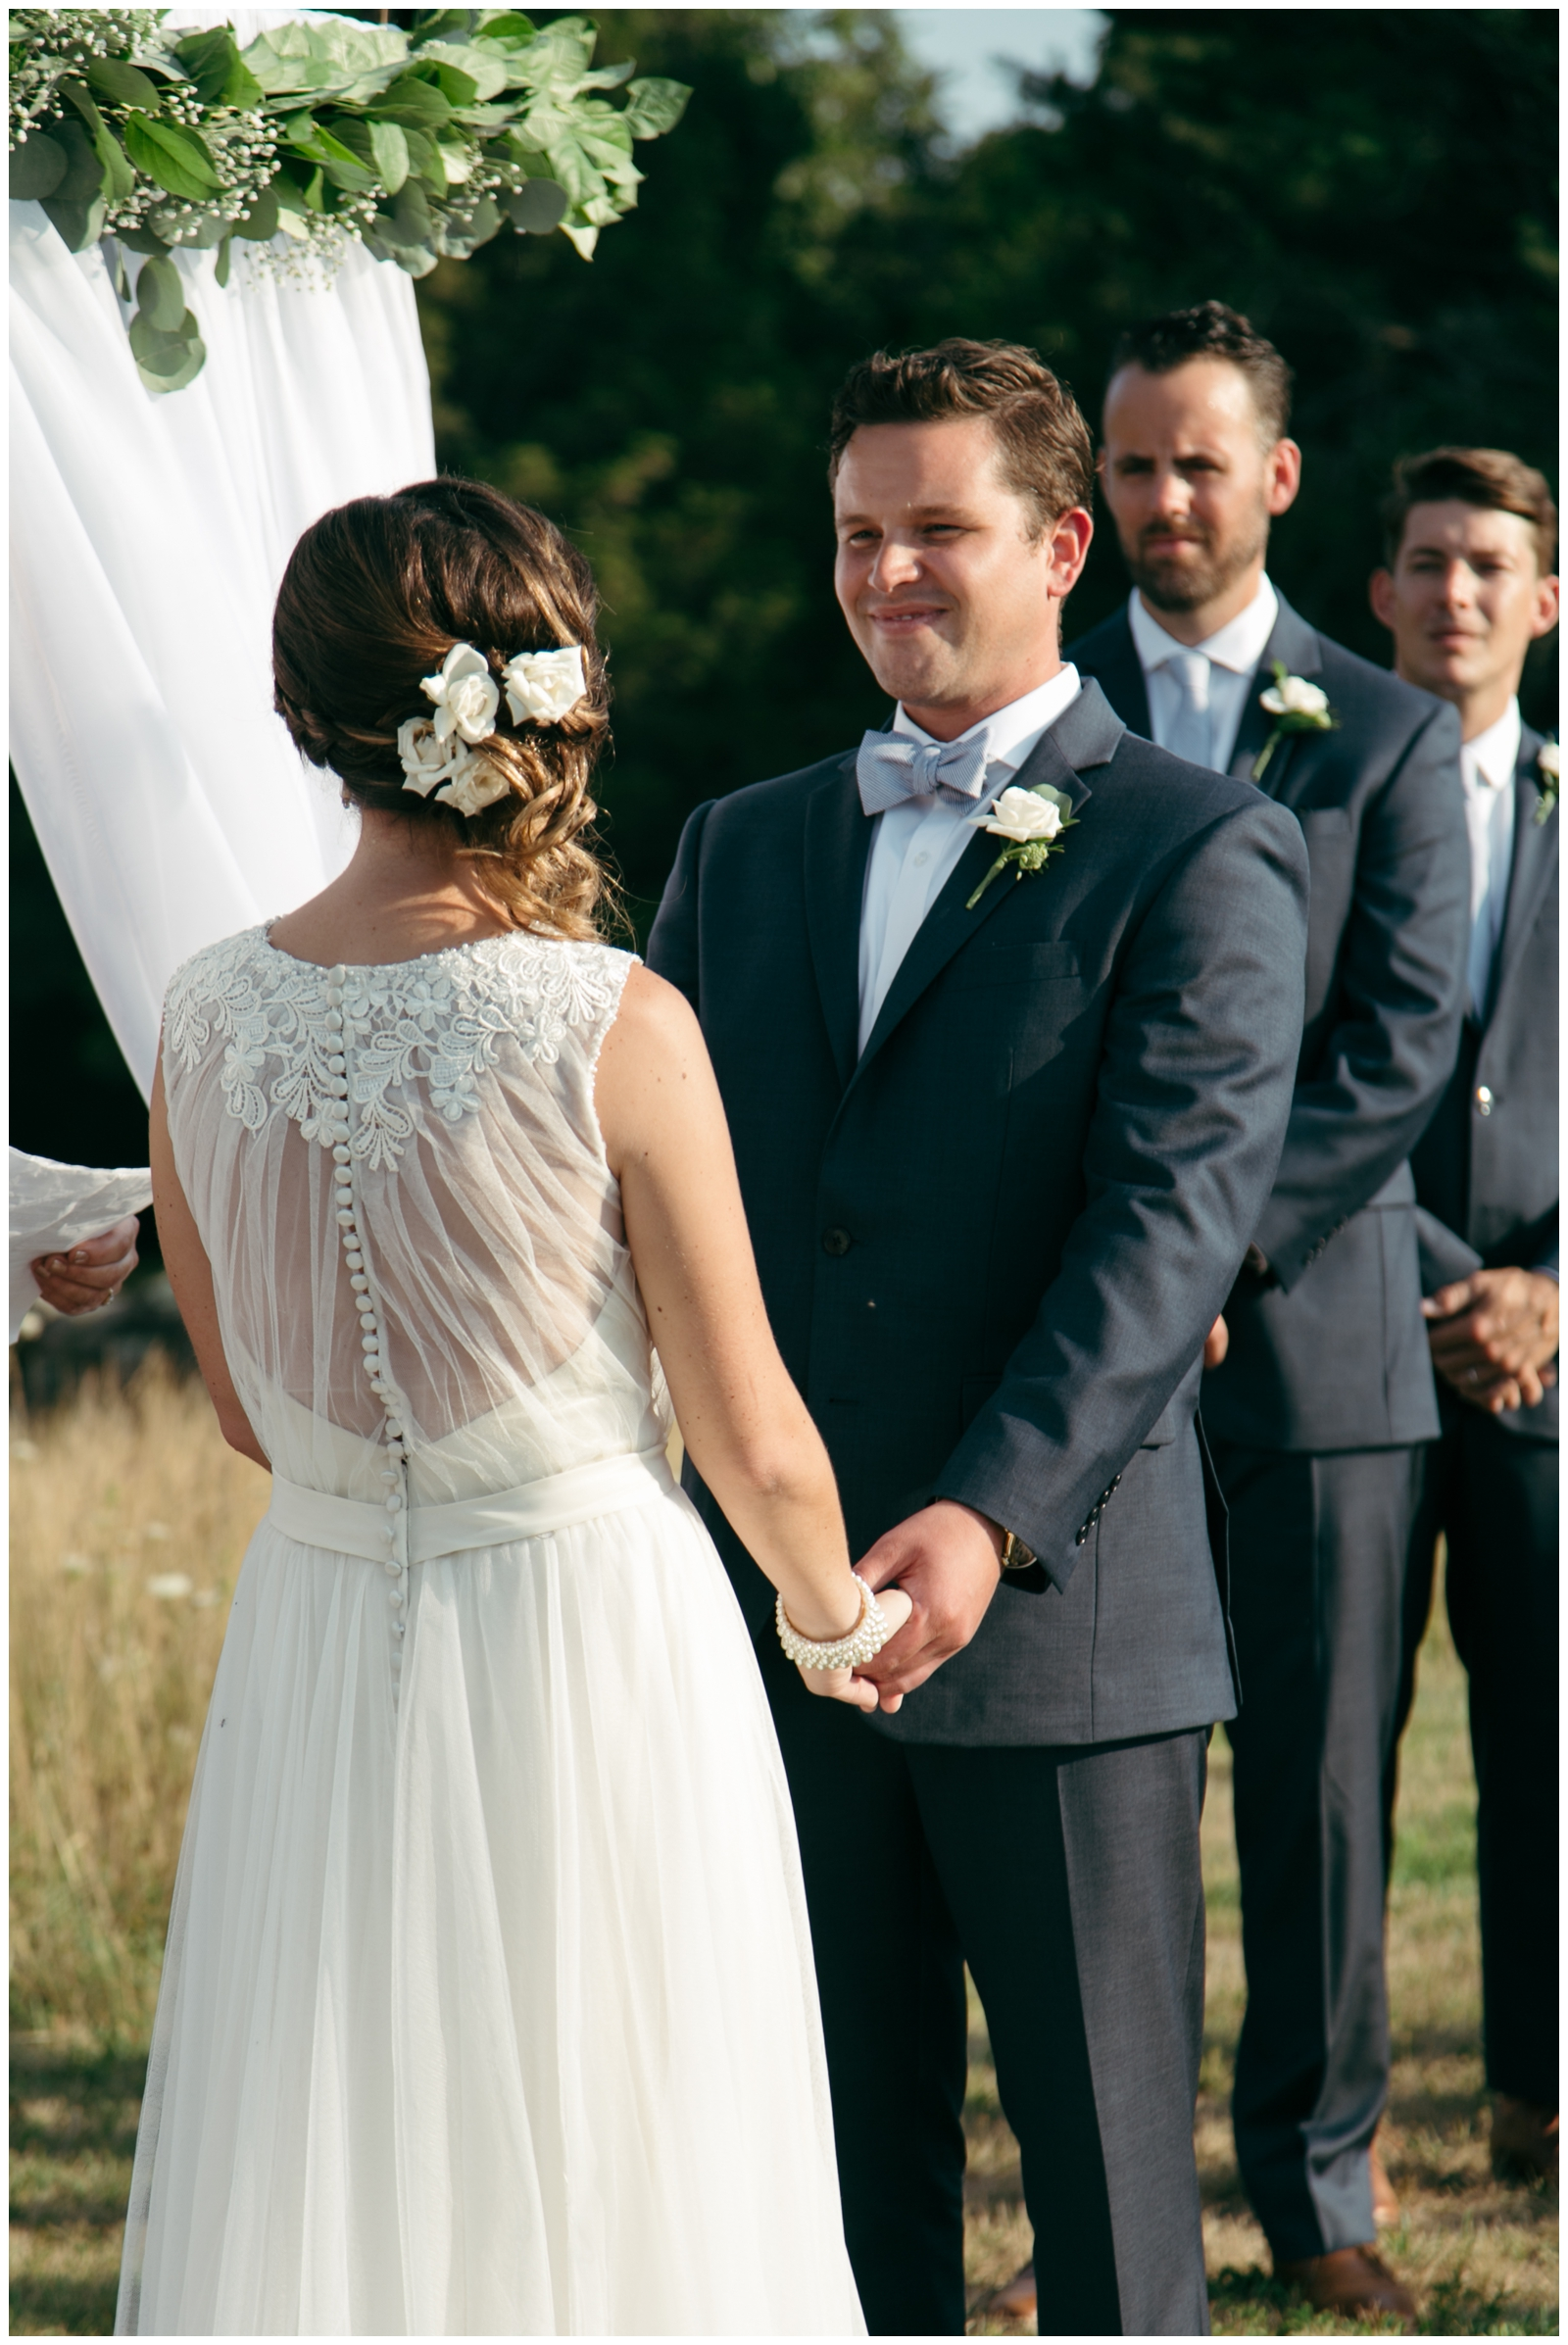 Bourne-Farm-Wedding-Cape-Cod-wedding-photographer-Bailey-Q-Photo-043.jpg